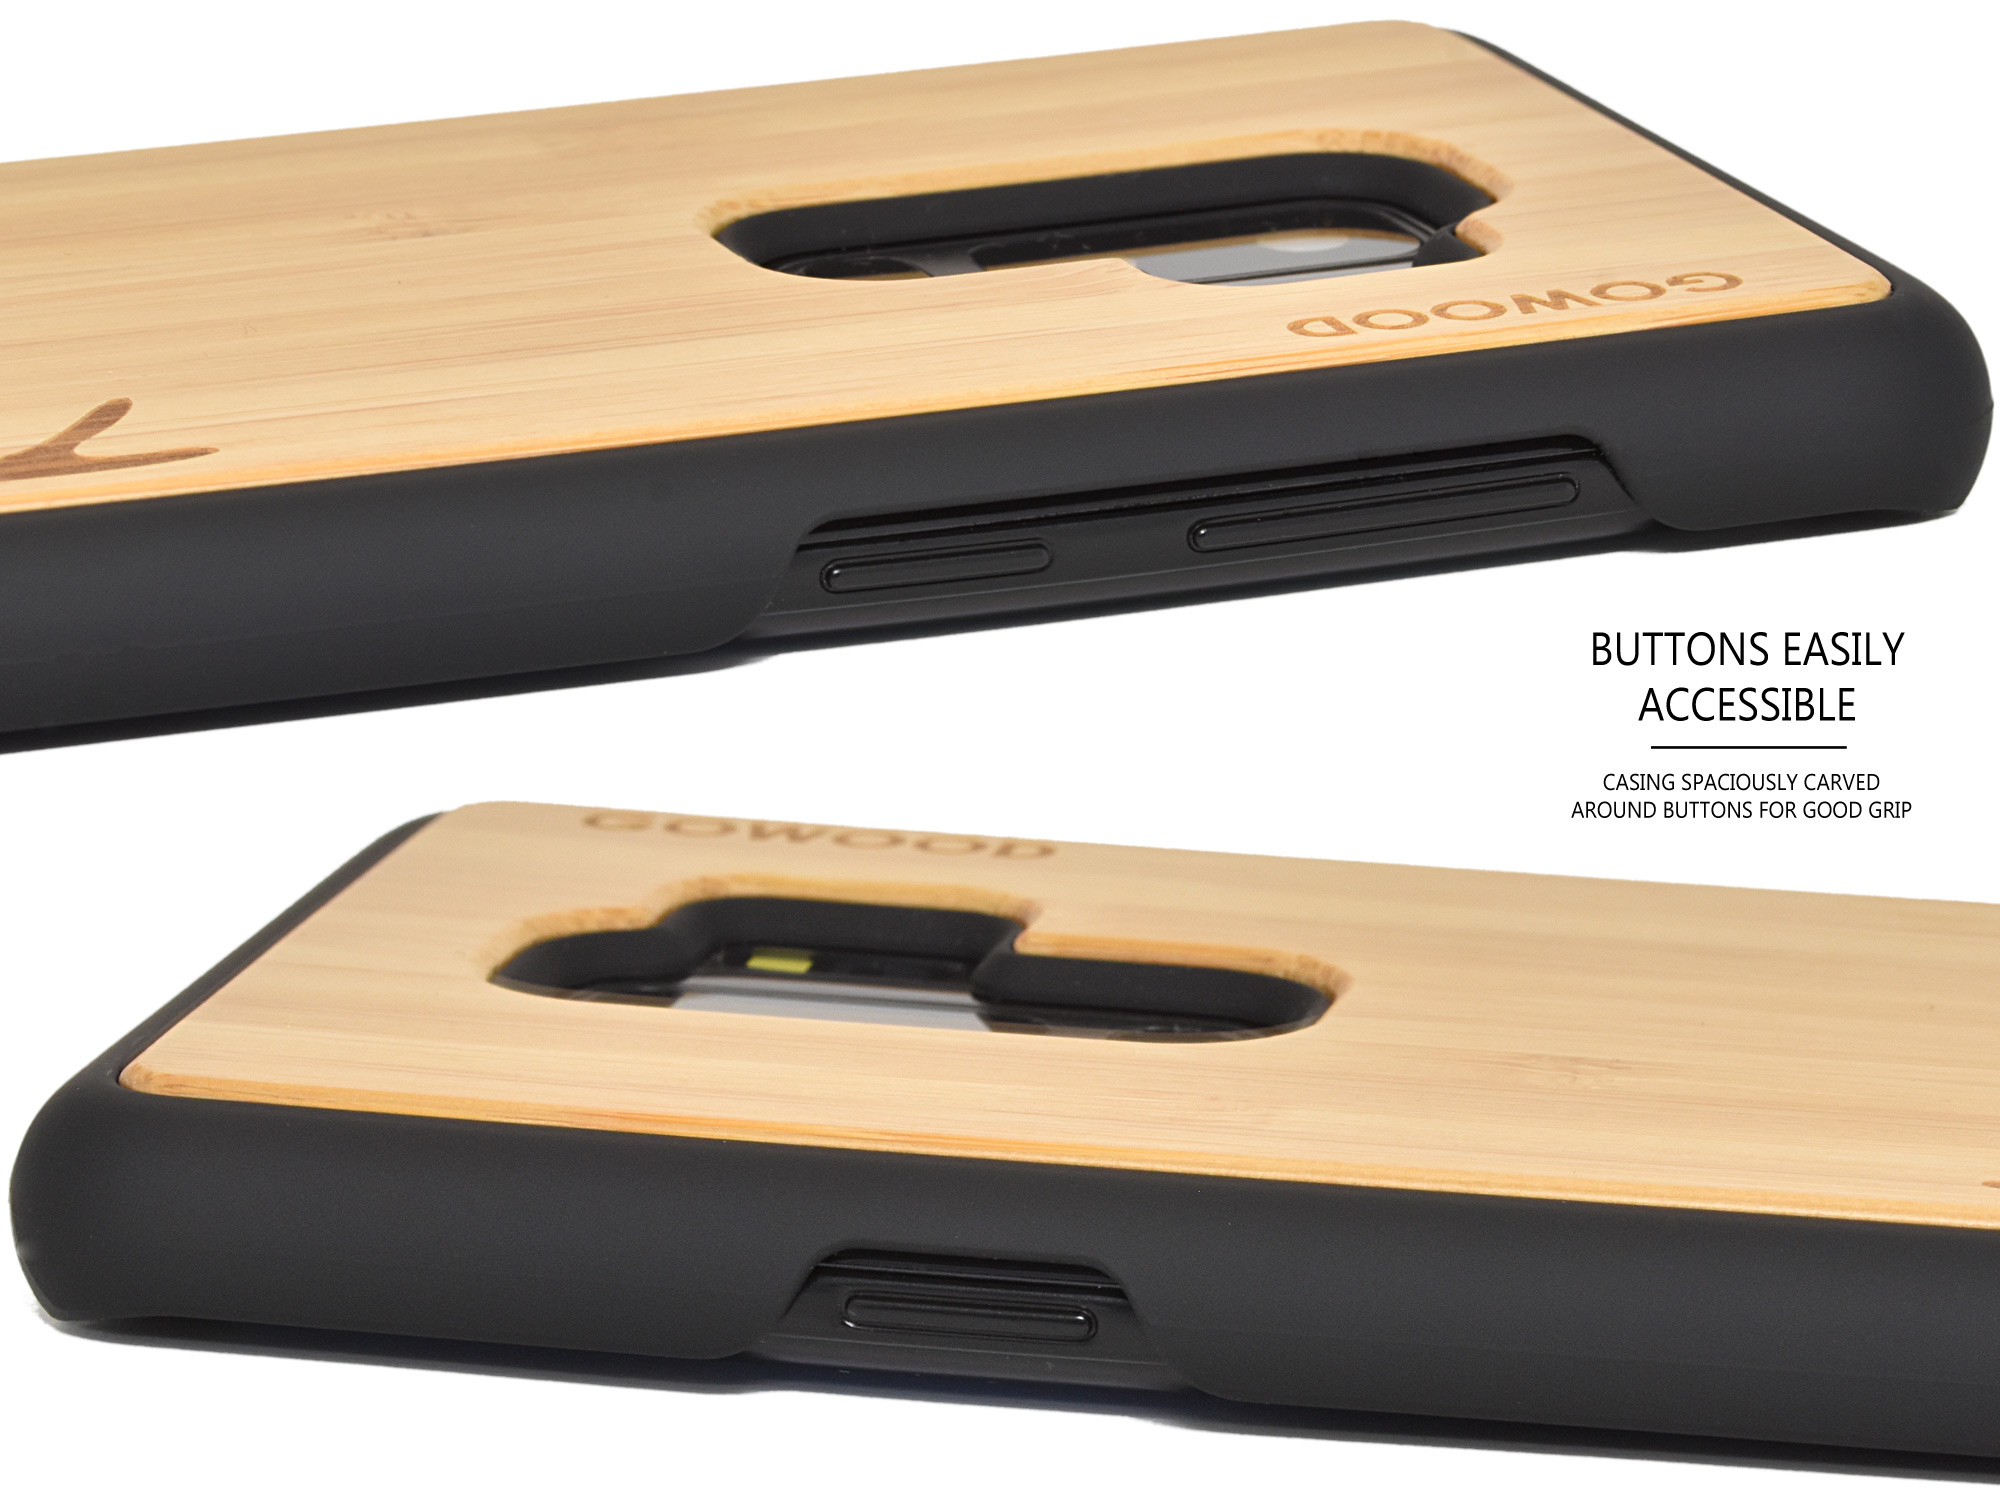 Samsung Galaxy S9 Plus wood case